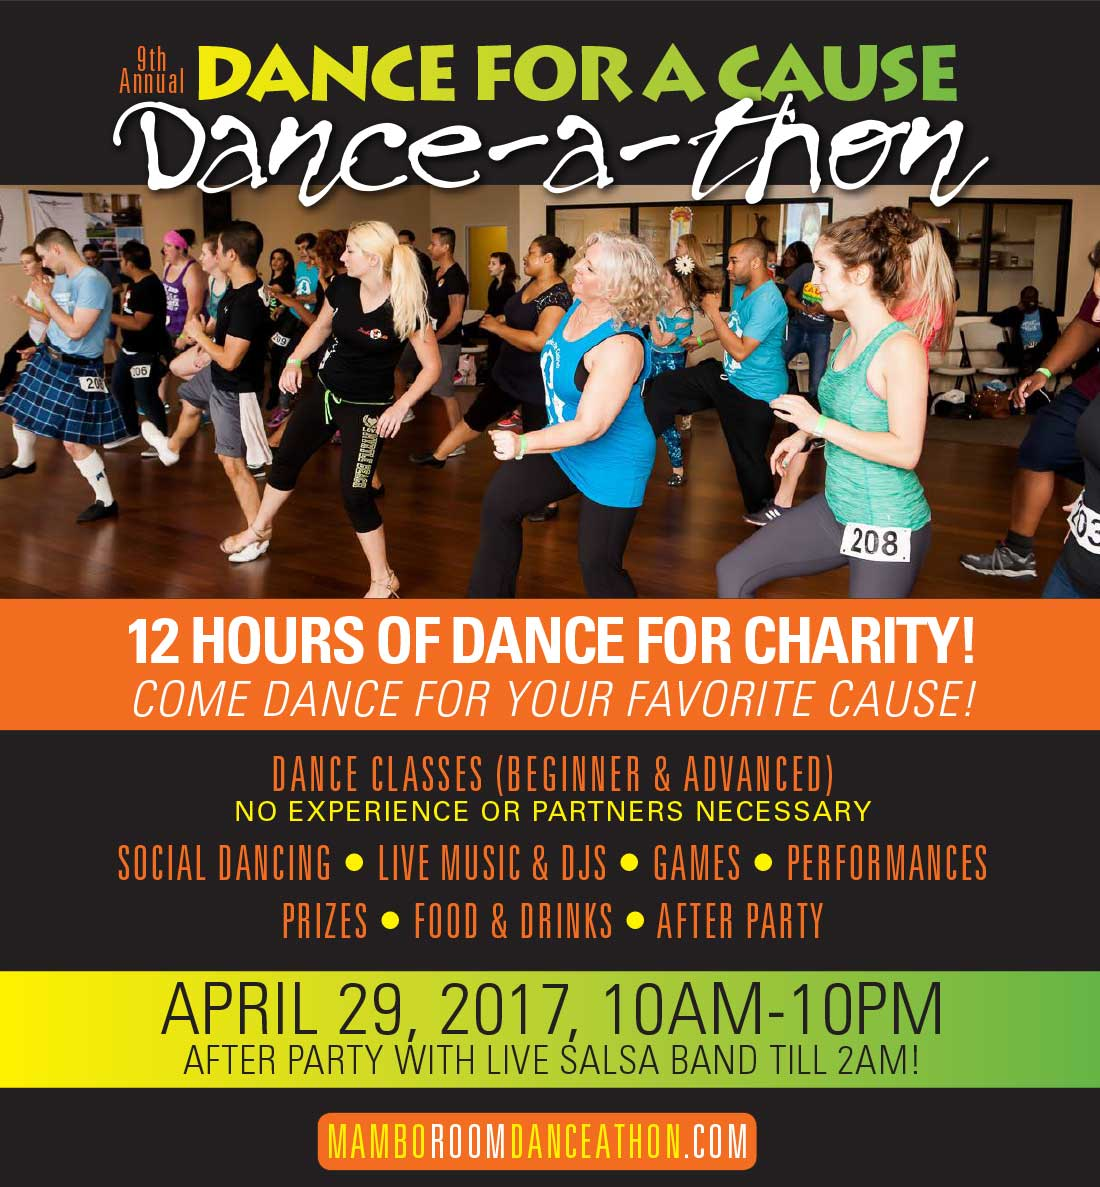 Mambo Room Dance for a Cause Danceathon